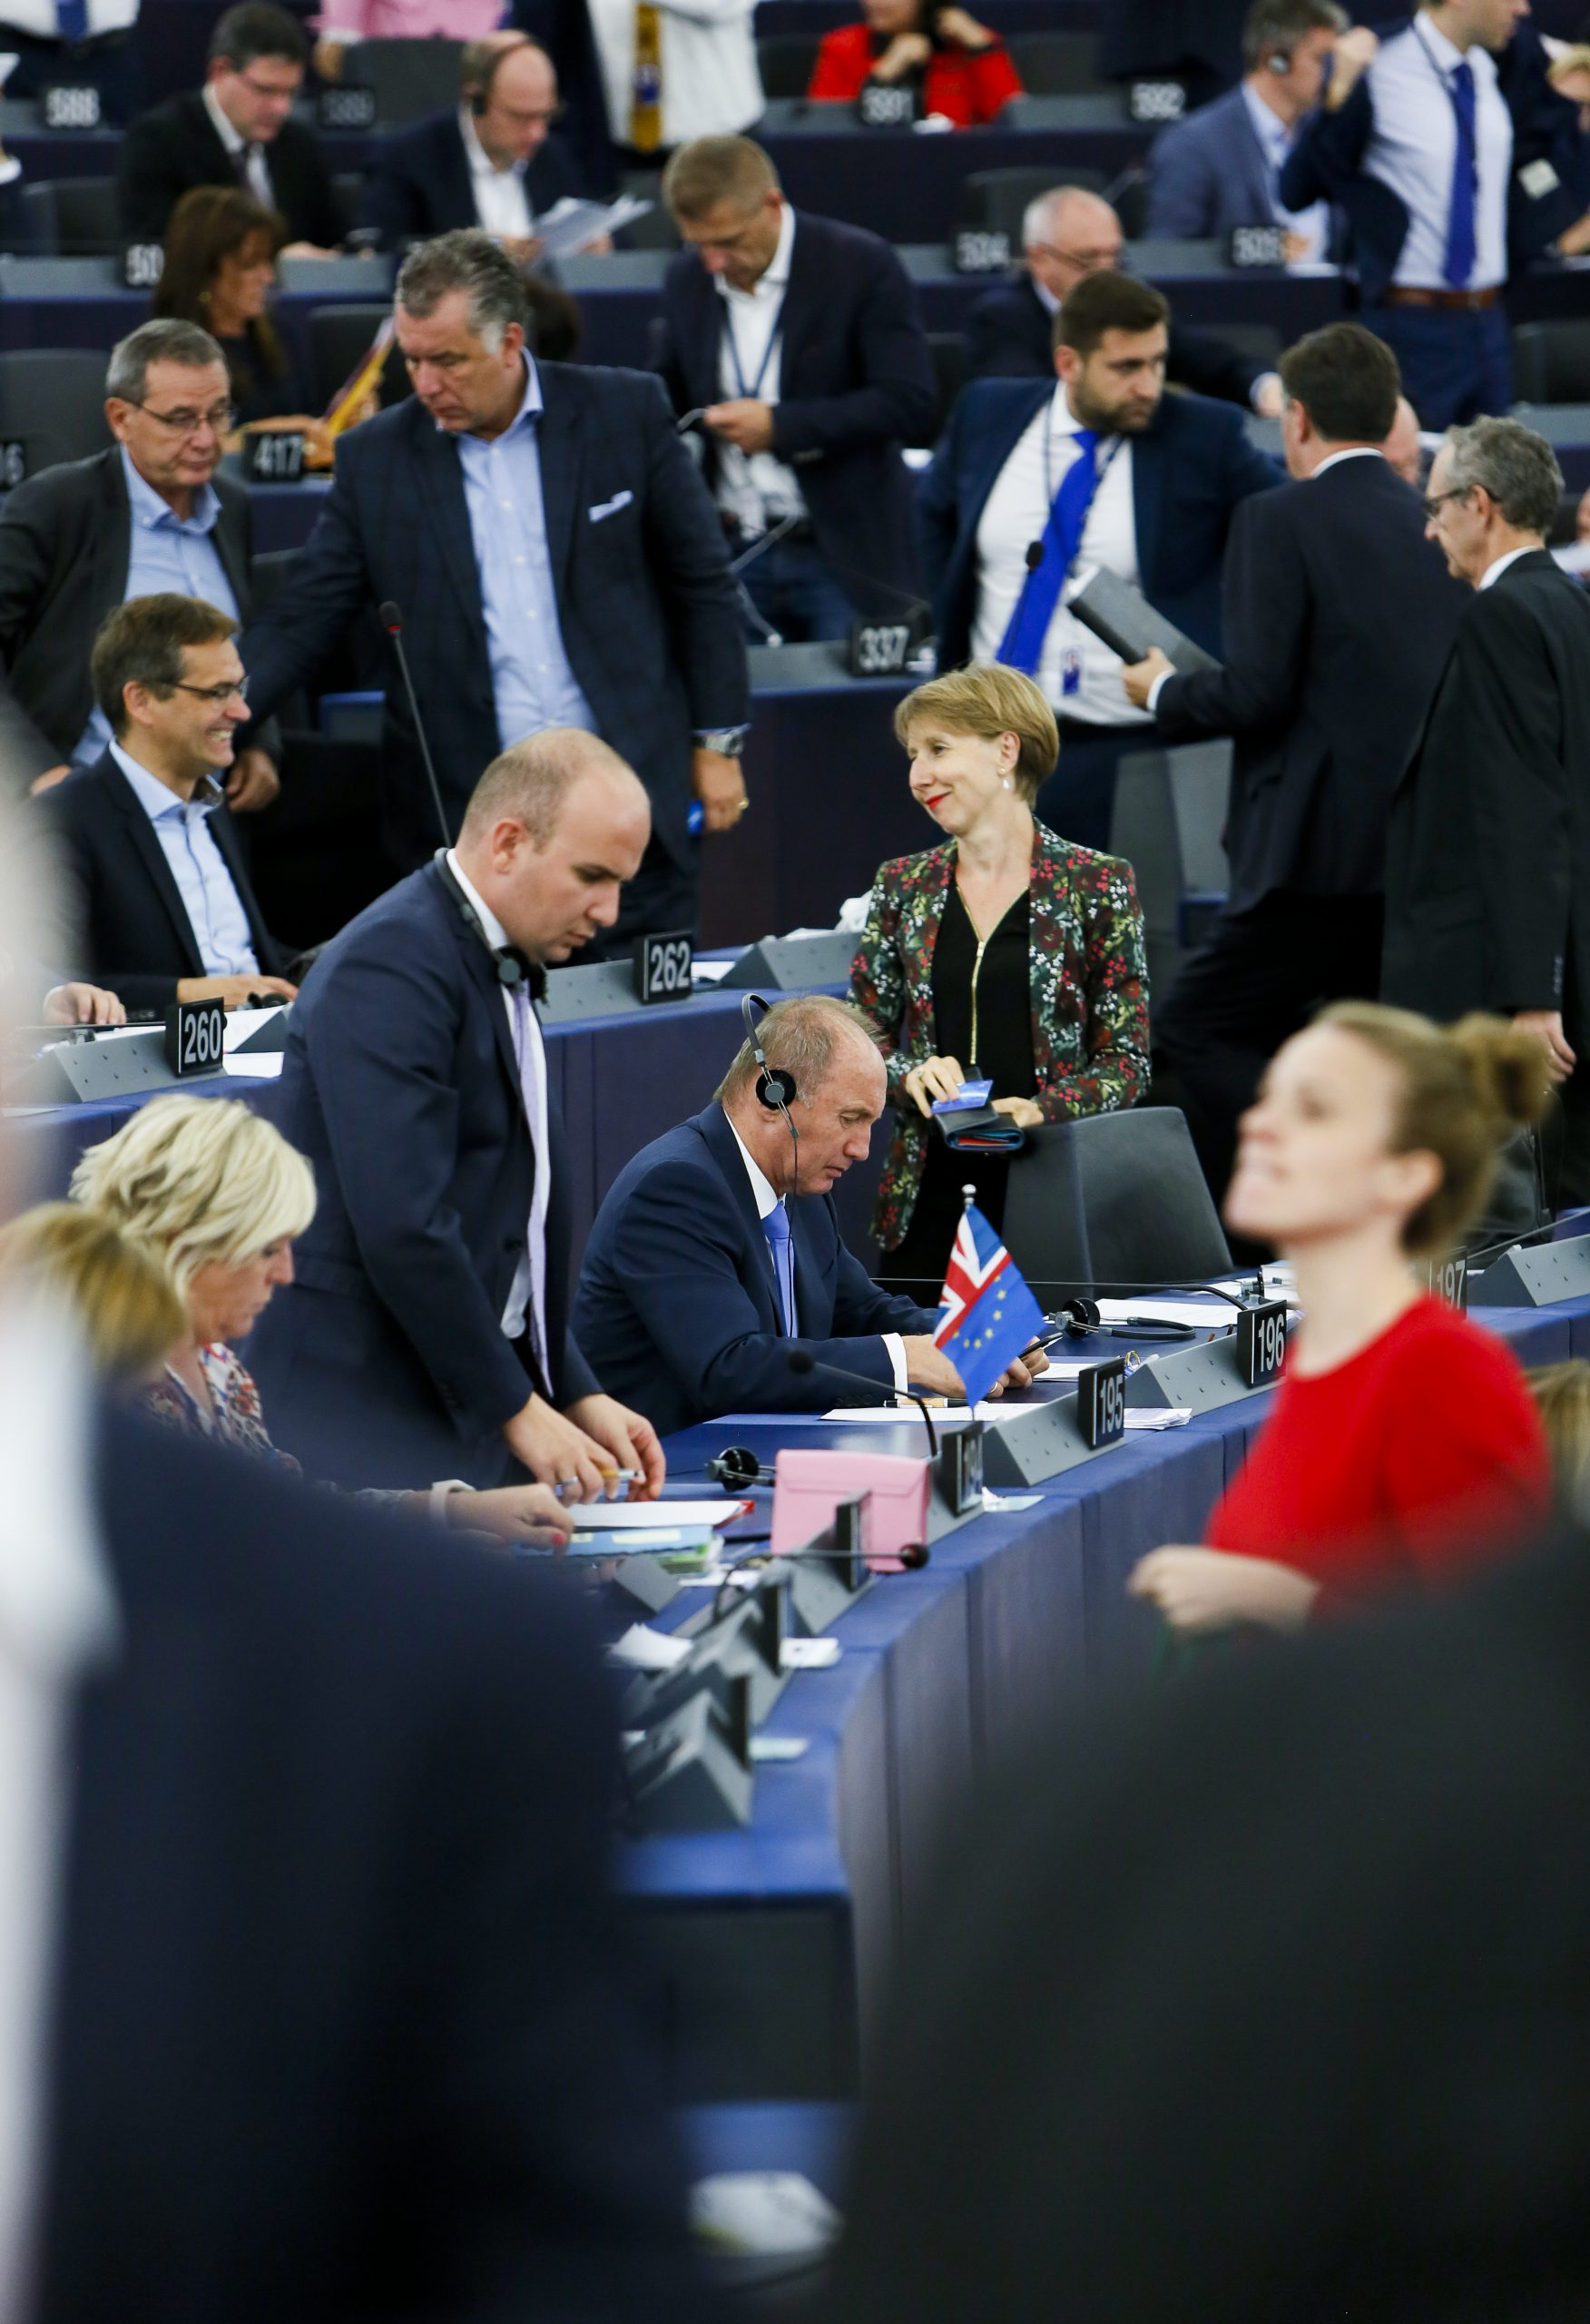 Plenary session- Votes followed by explanations of vote